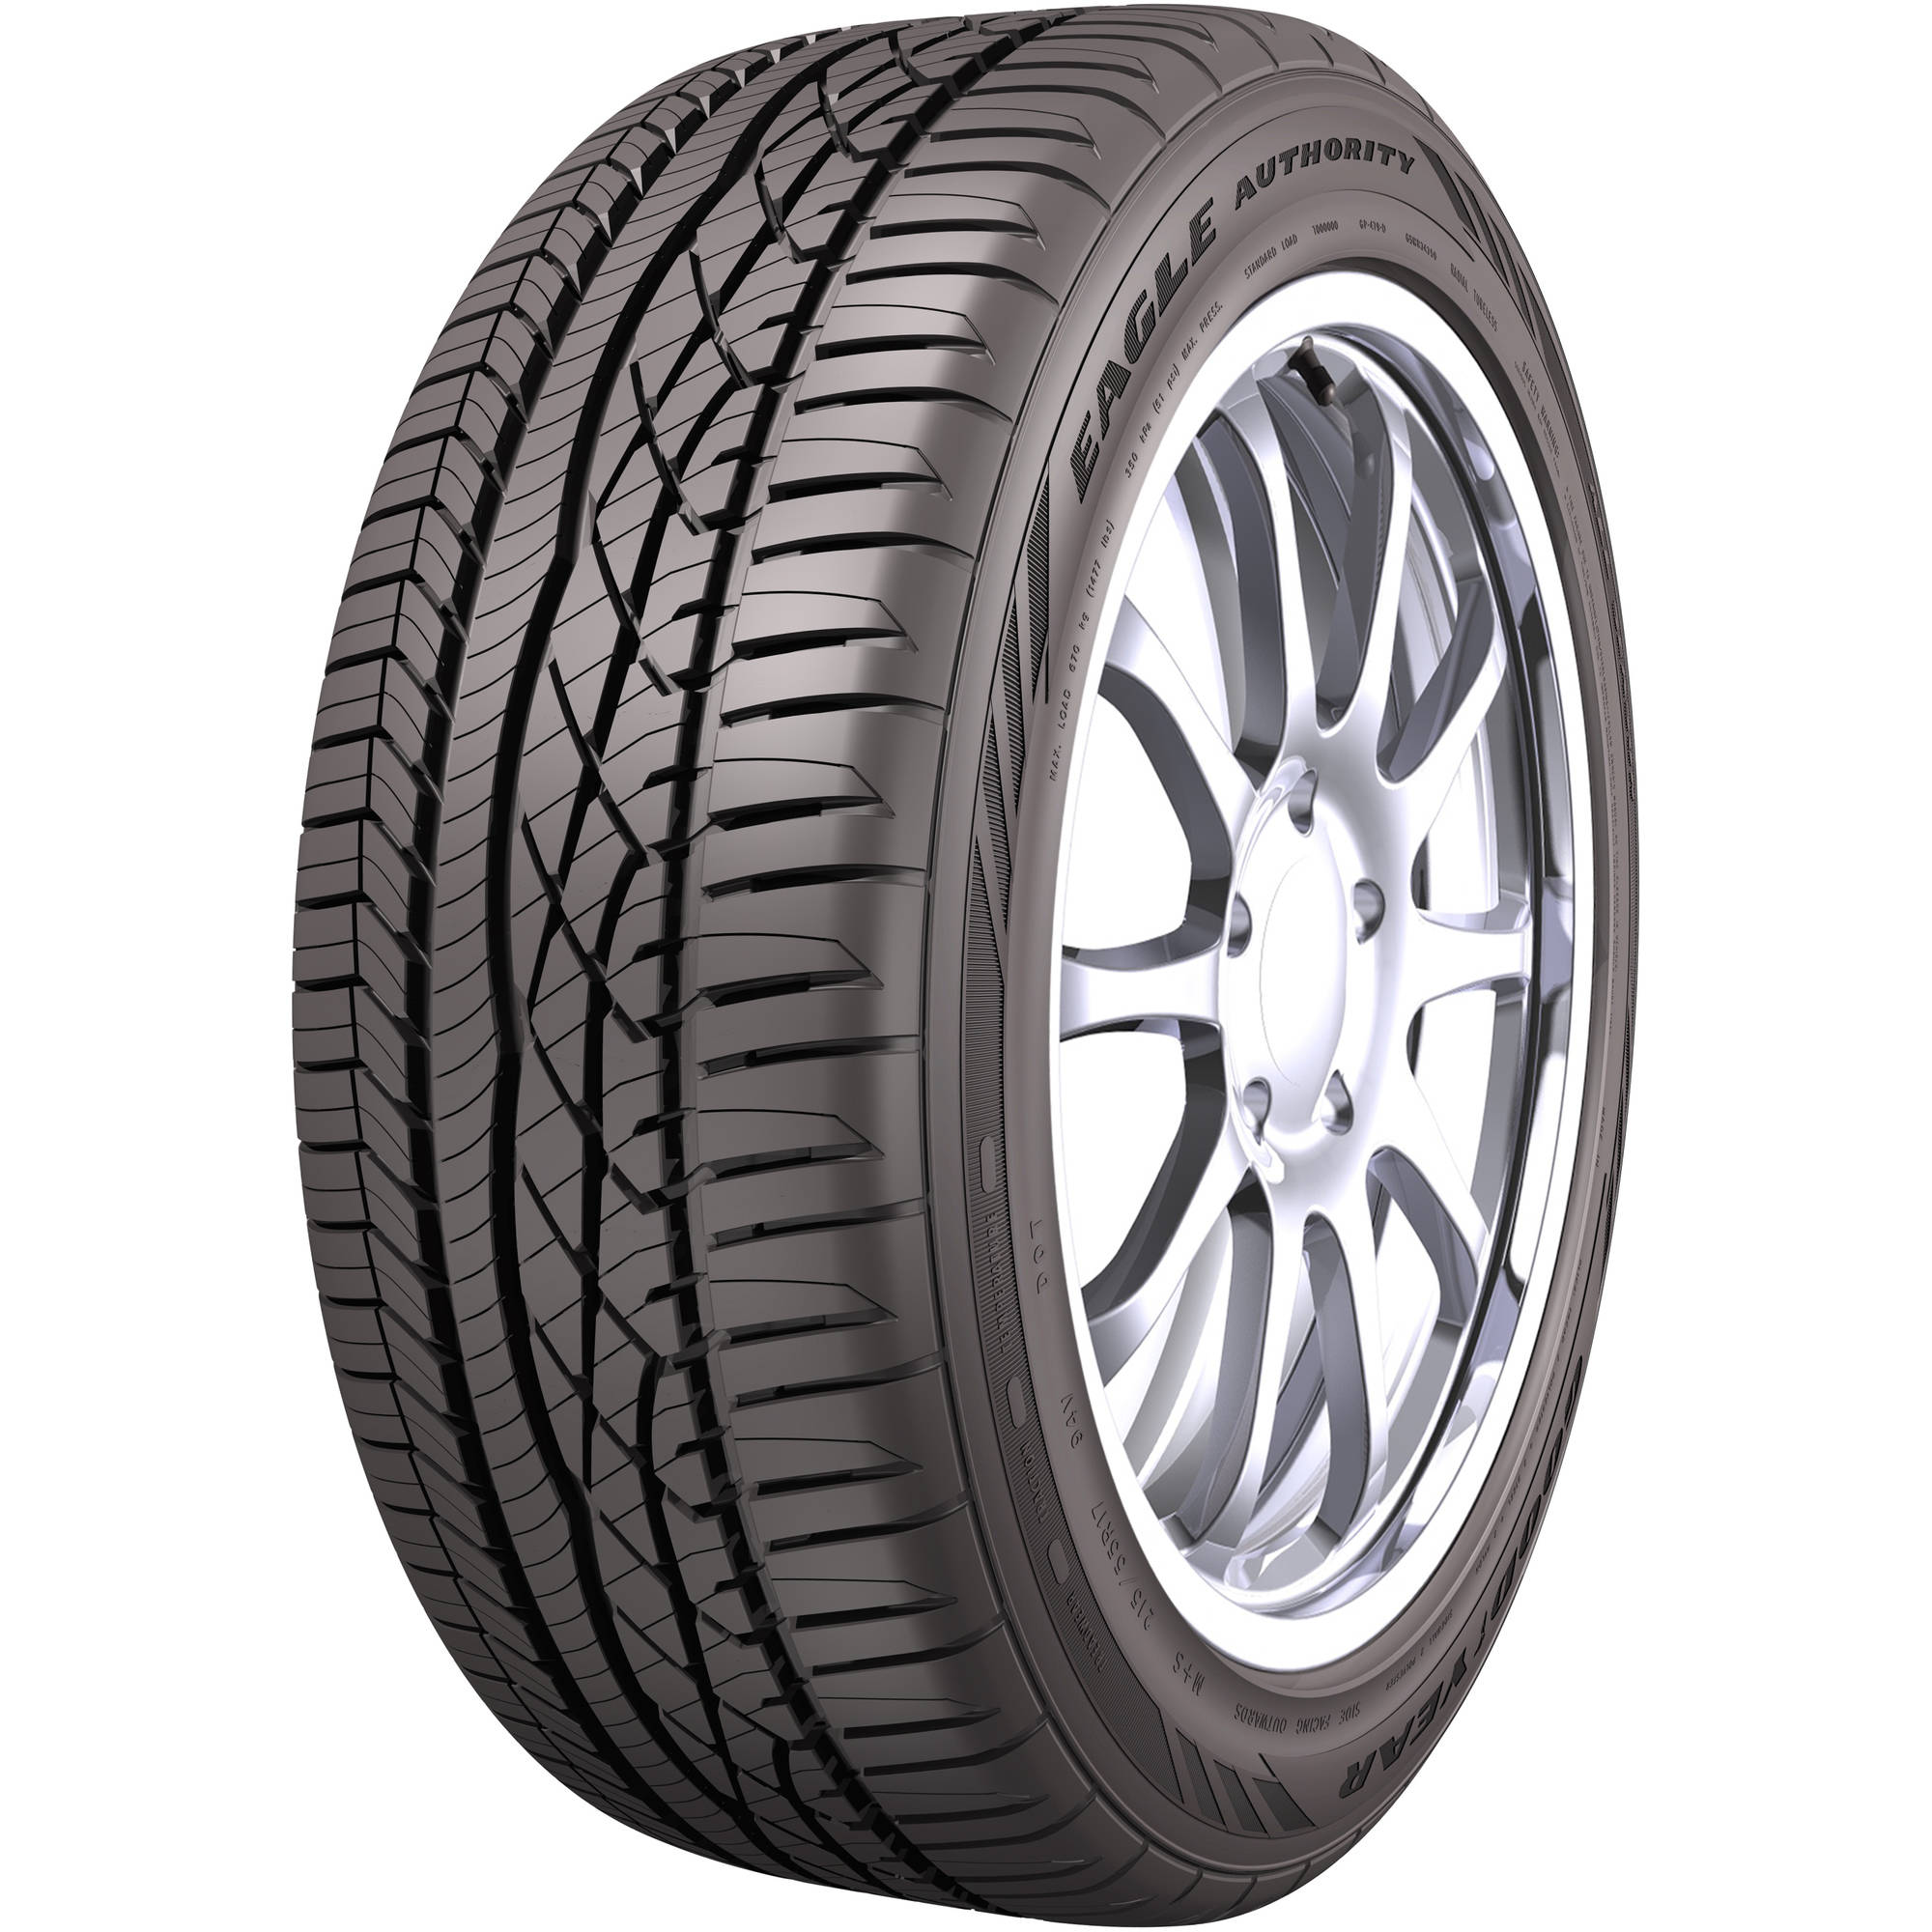 Goodyear Eagle Authority Tire 215/45ZR17 91W